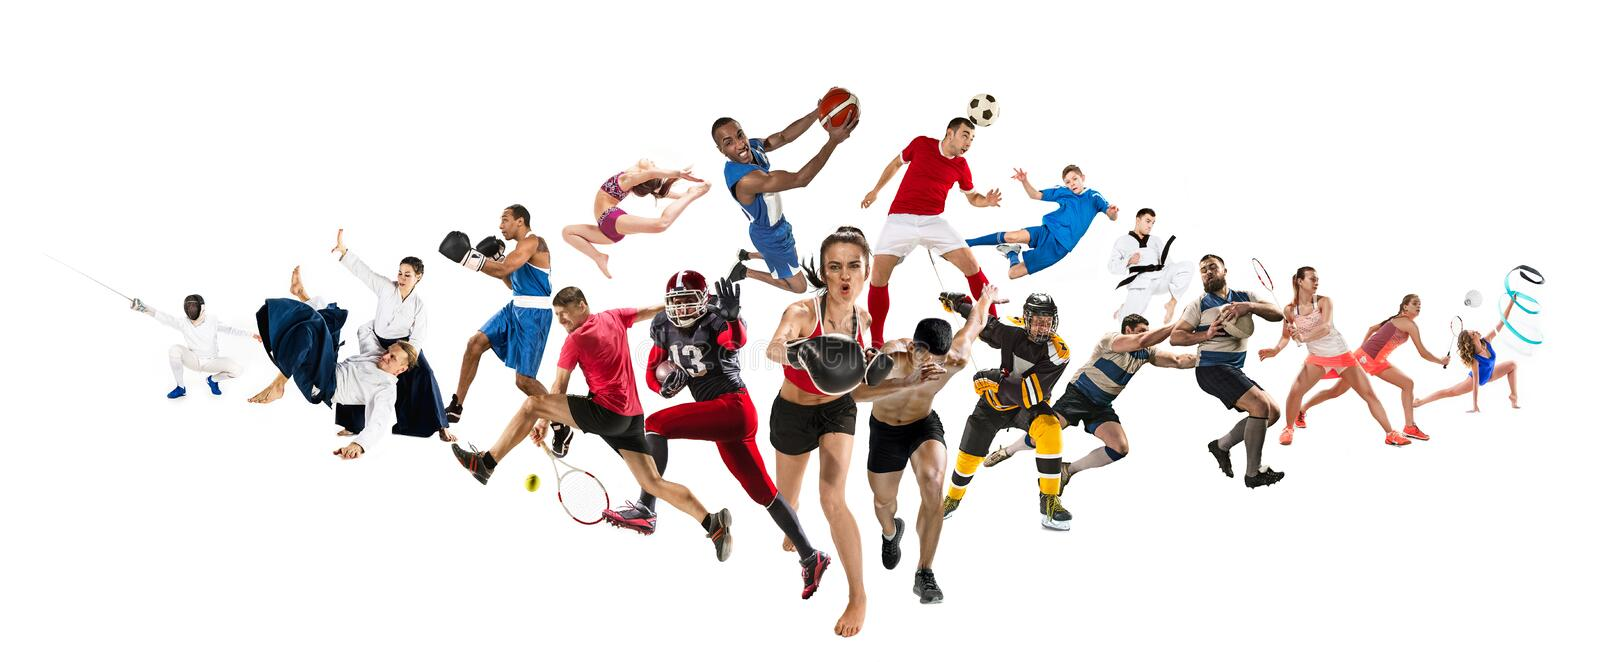 Sport collage about kickboxing, soccer, american football, basketball, ice hockey, badminton, taekwondo, tennis, rugby royalty free stock images